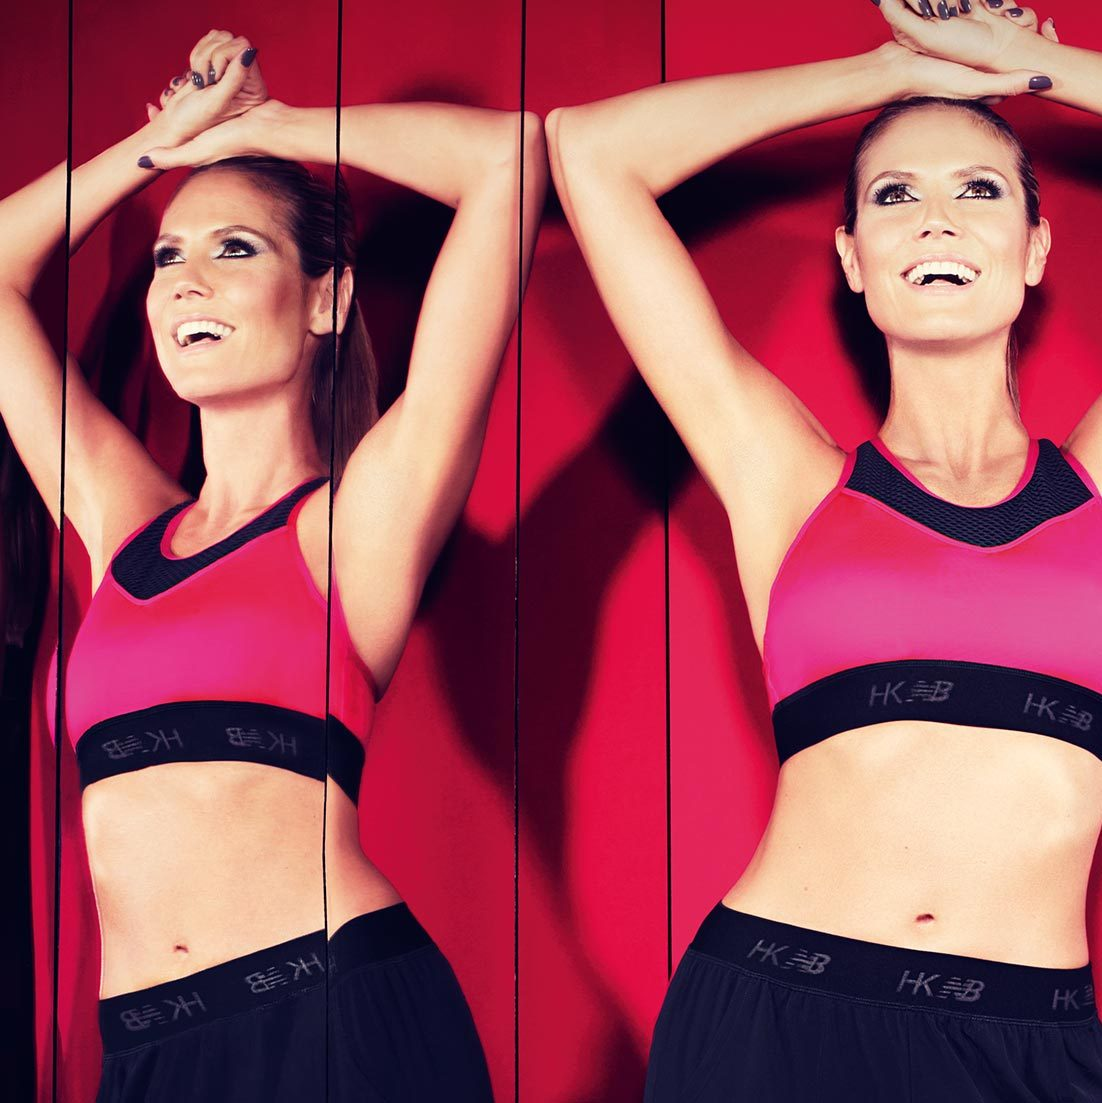 Supermodel Heidi Klum has become the face of New Balance's activewear line. Looks like the brand primarily known for shoes just got a runway makeover!